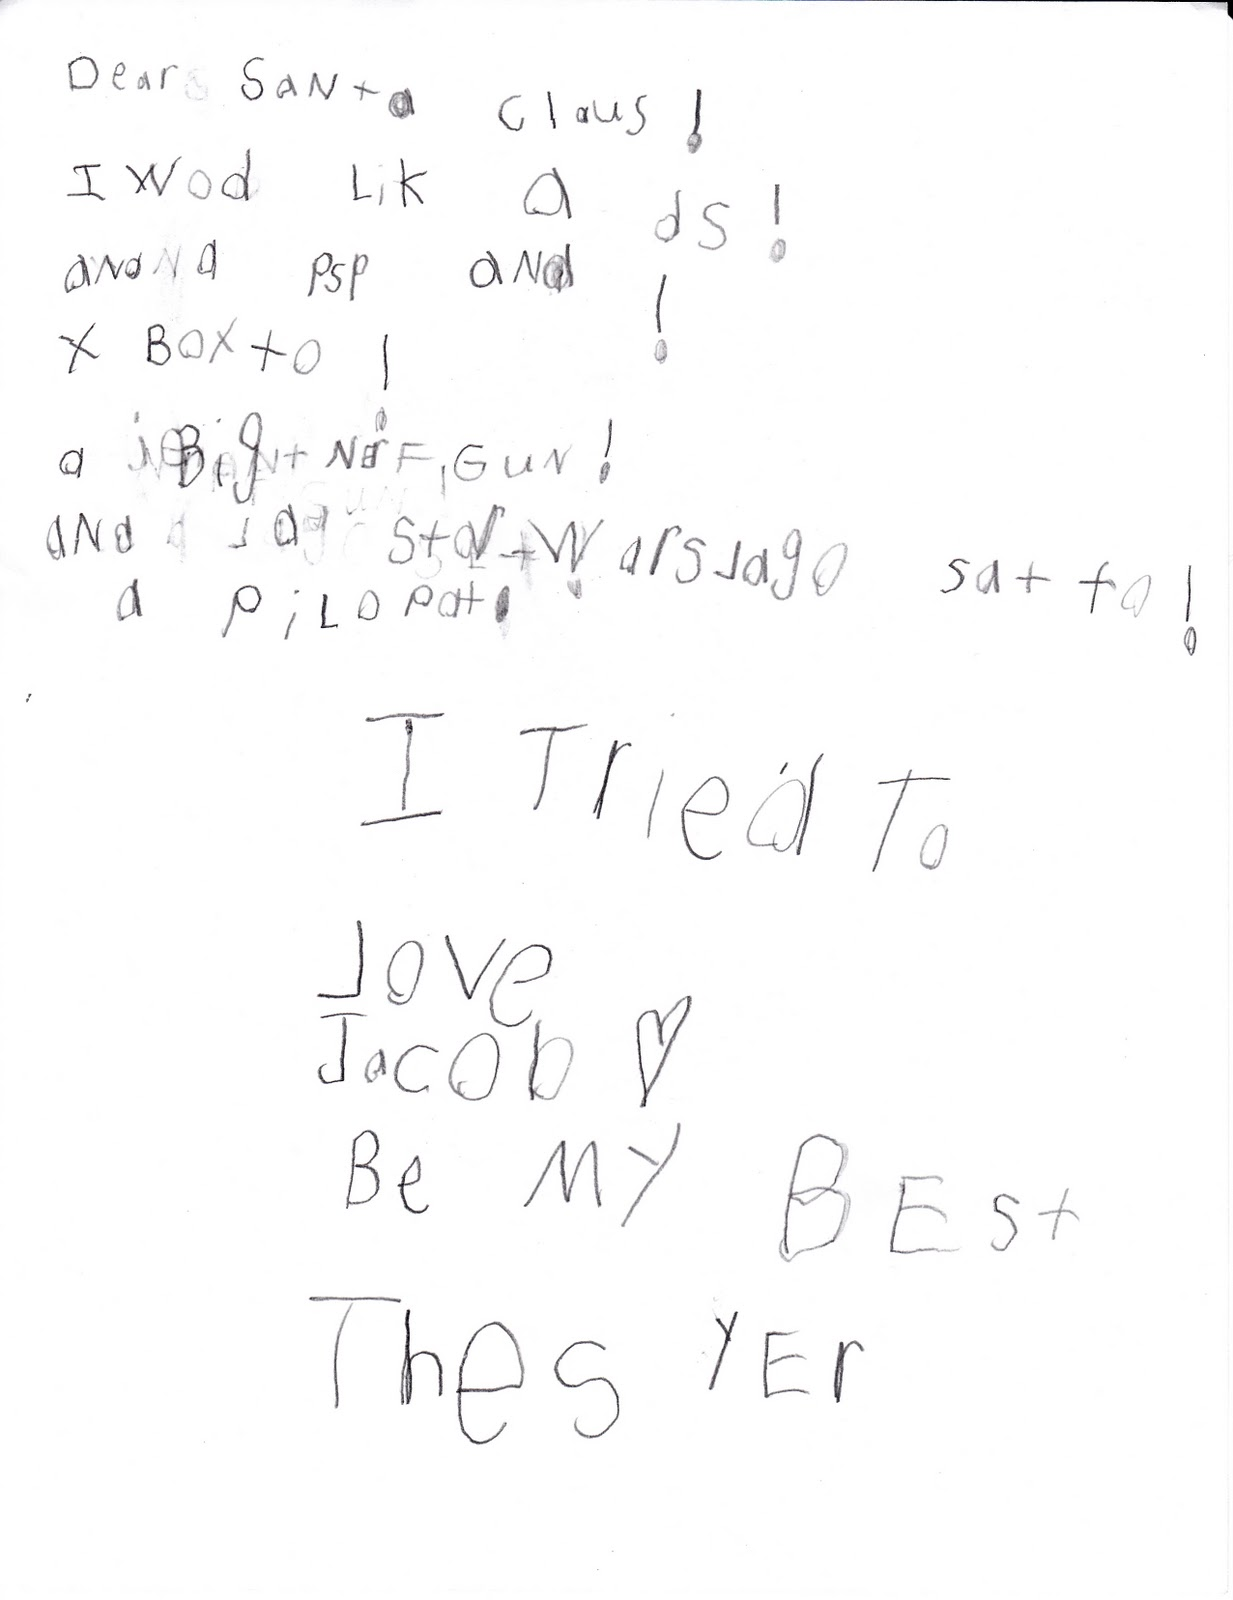 Jason moffitt life and faith jacobs letter to santa 2010 dear santa claus boy he is excited isnt he i would like a ds meaning nintendo ds system and a psp playstation portablepersonal spiritdancerdesigns Choice Image